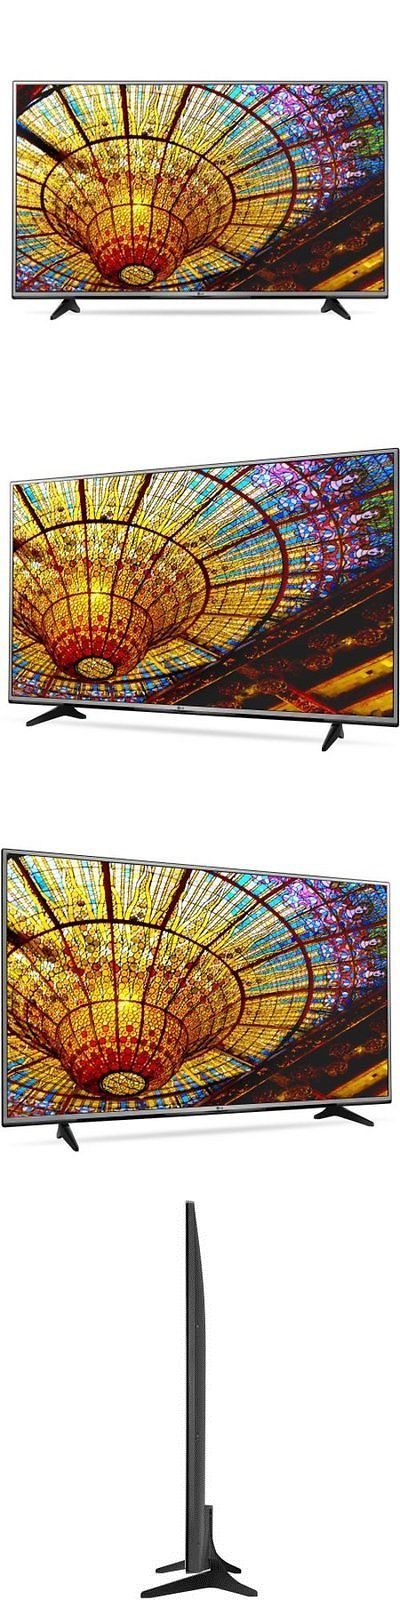 Televisions: Lg 49Uh6030 49 Webos 3.0 Smart 4K Ultra Hd Trumotion 120Hz Led Uhdtv -> BUY IT NOW ONLY: $467.36 on eBay!